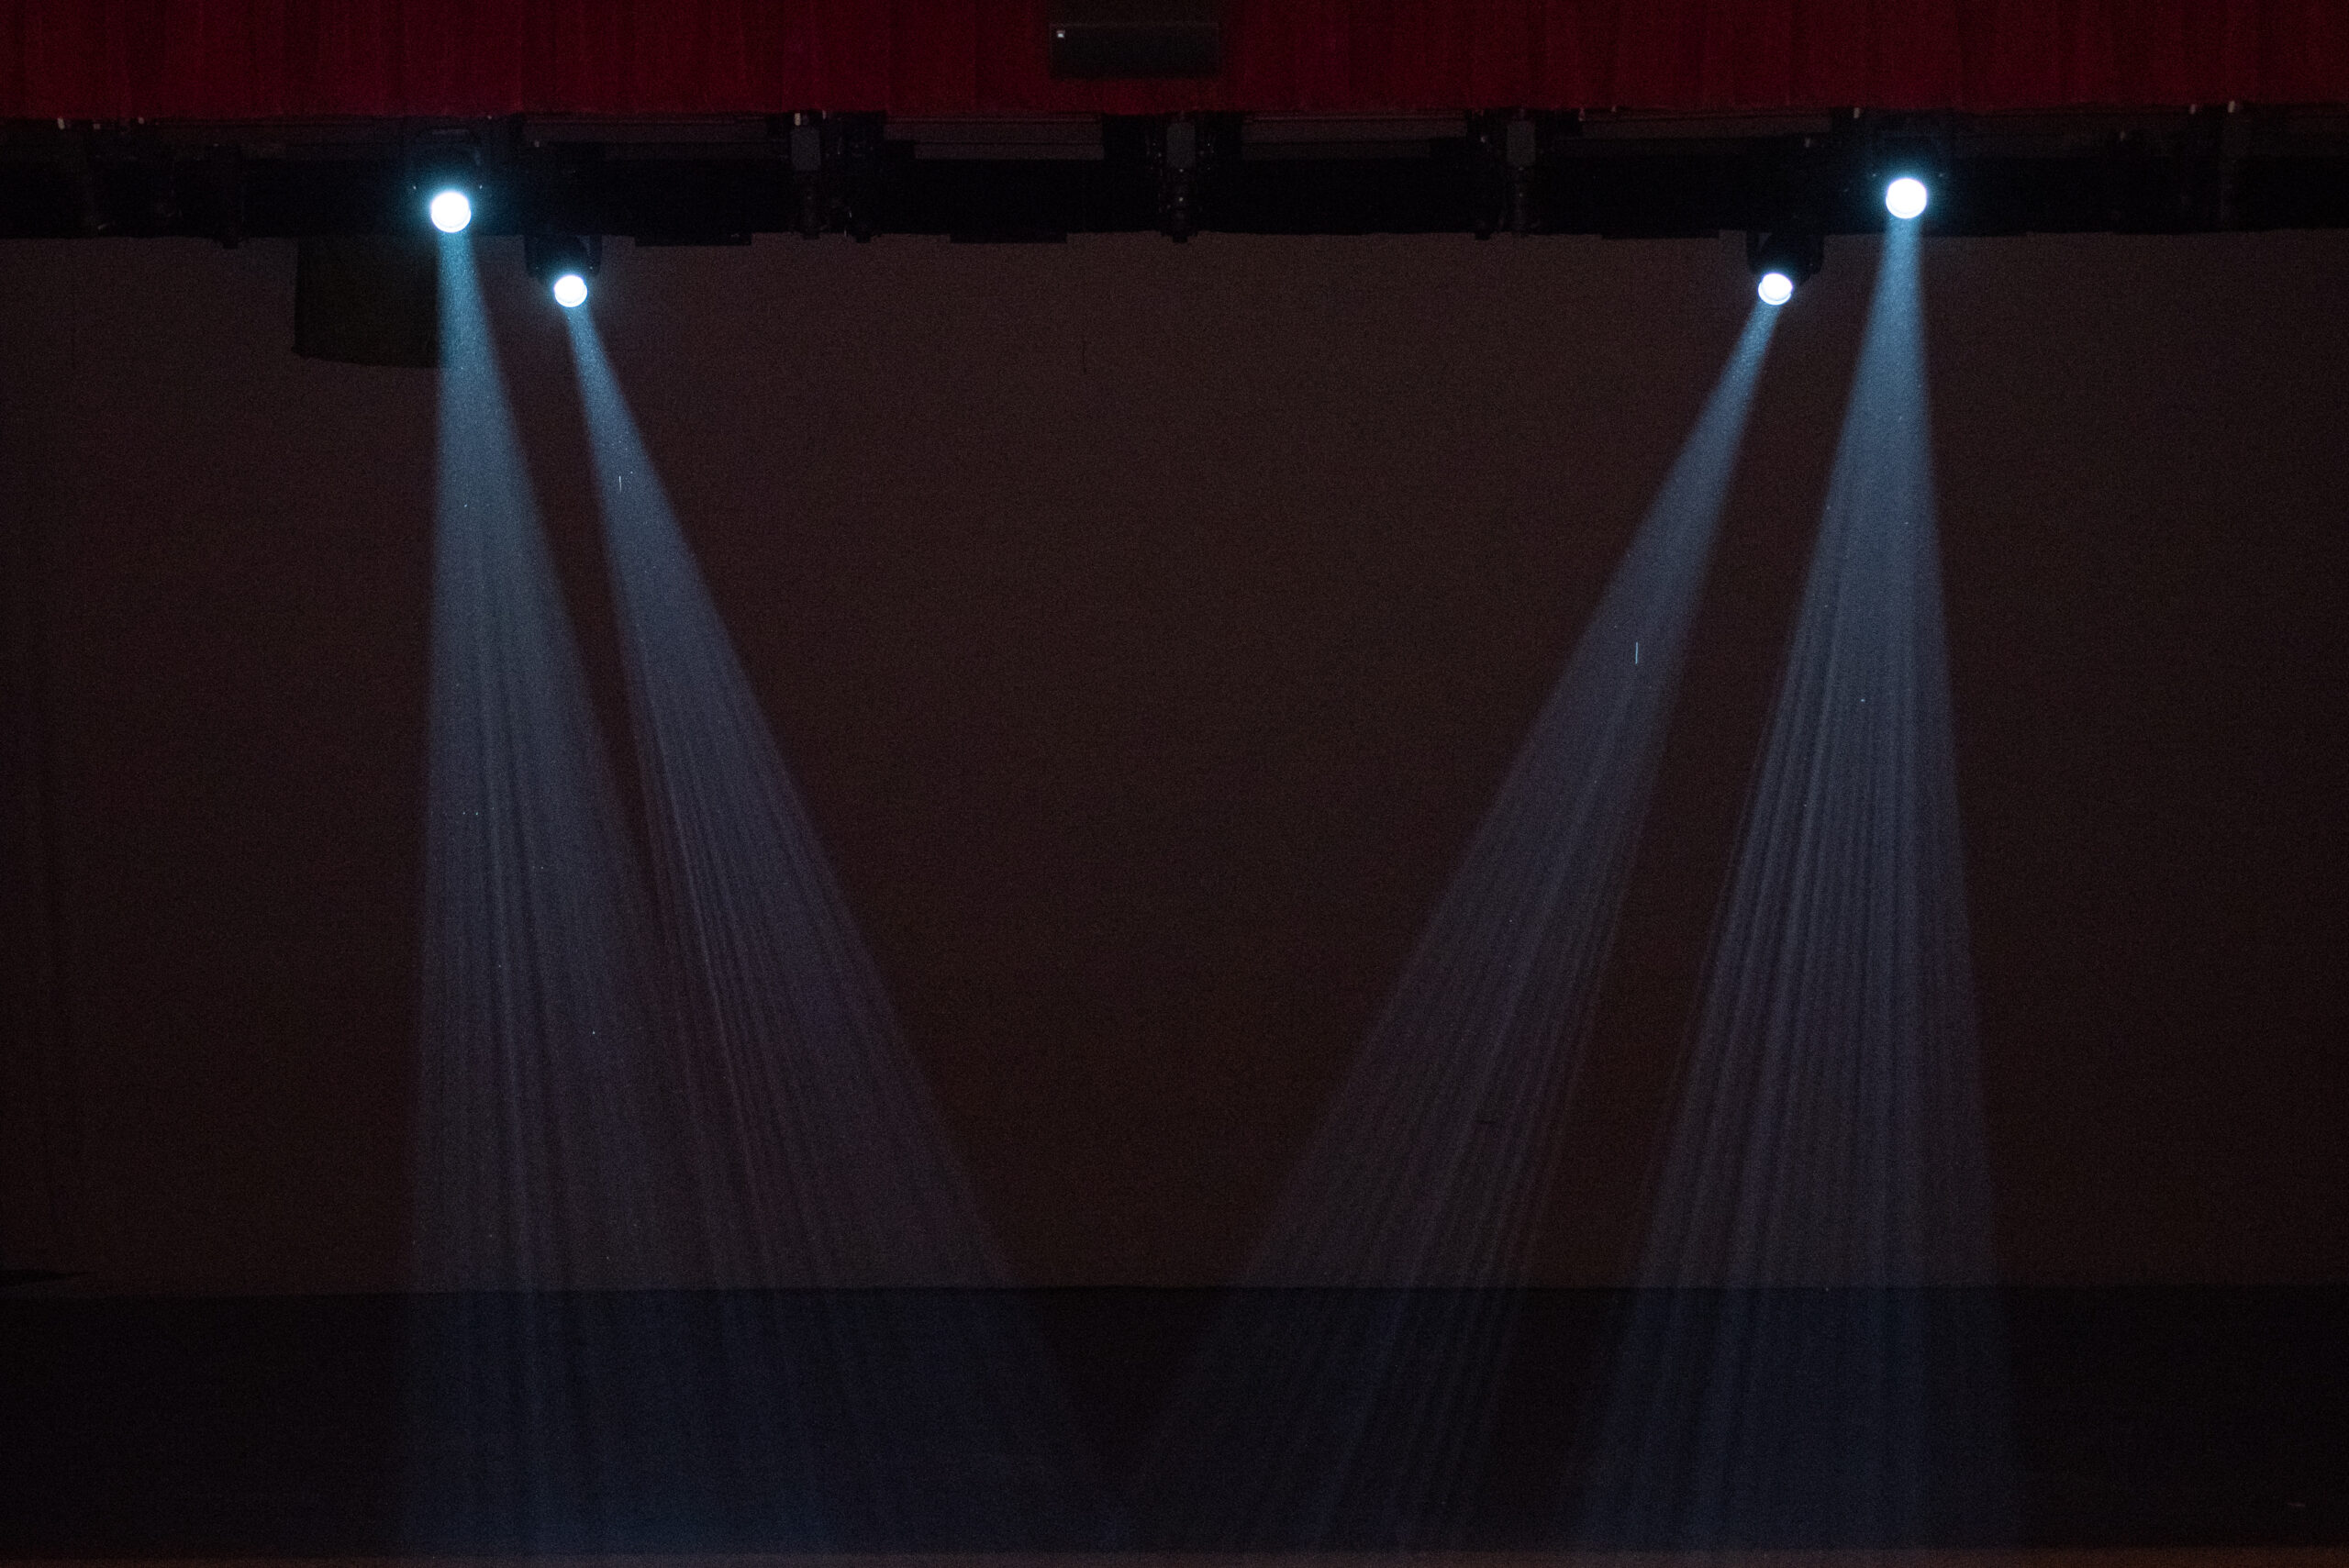 Spotlights on the stage